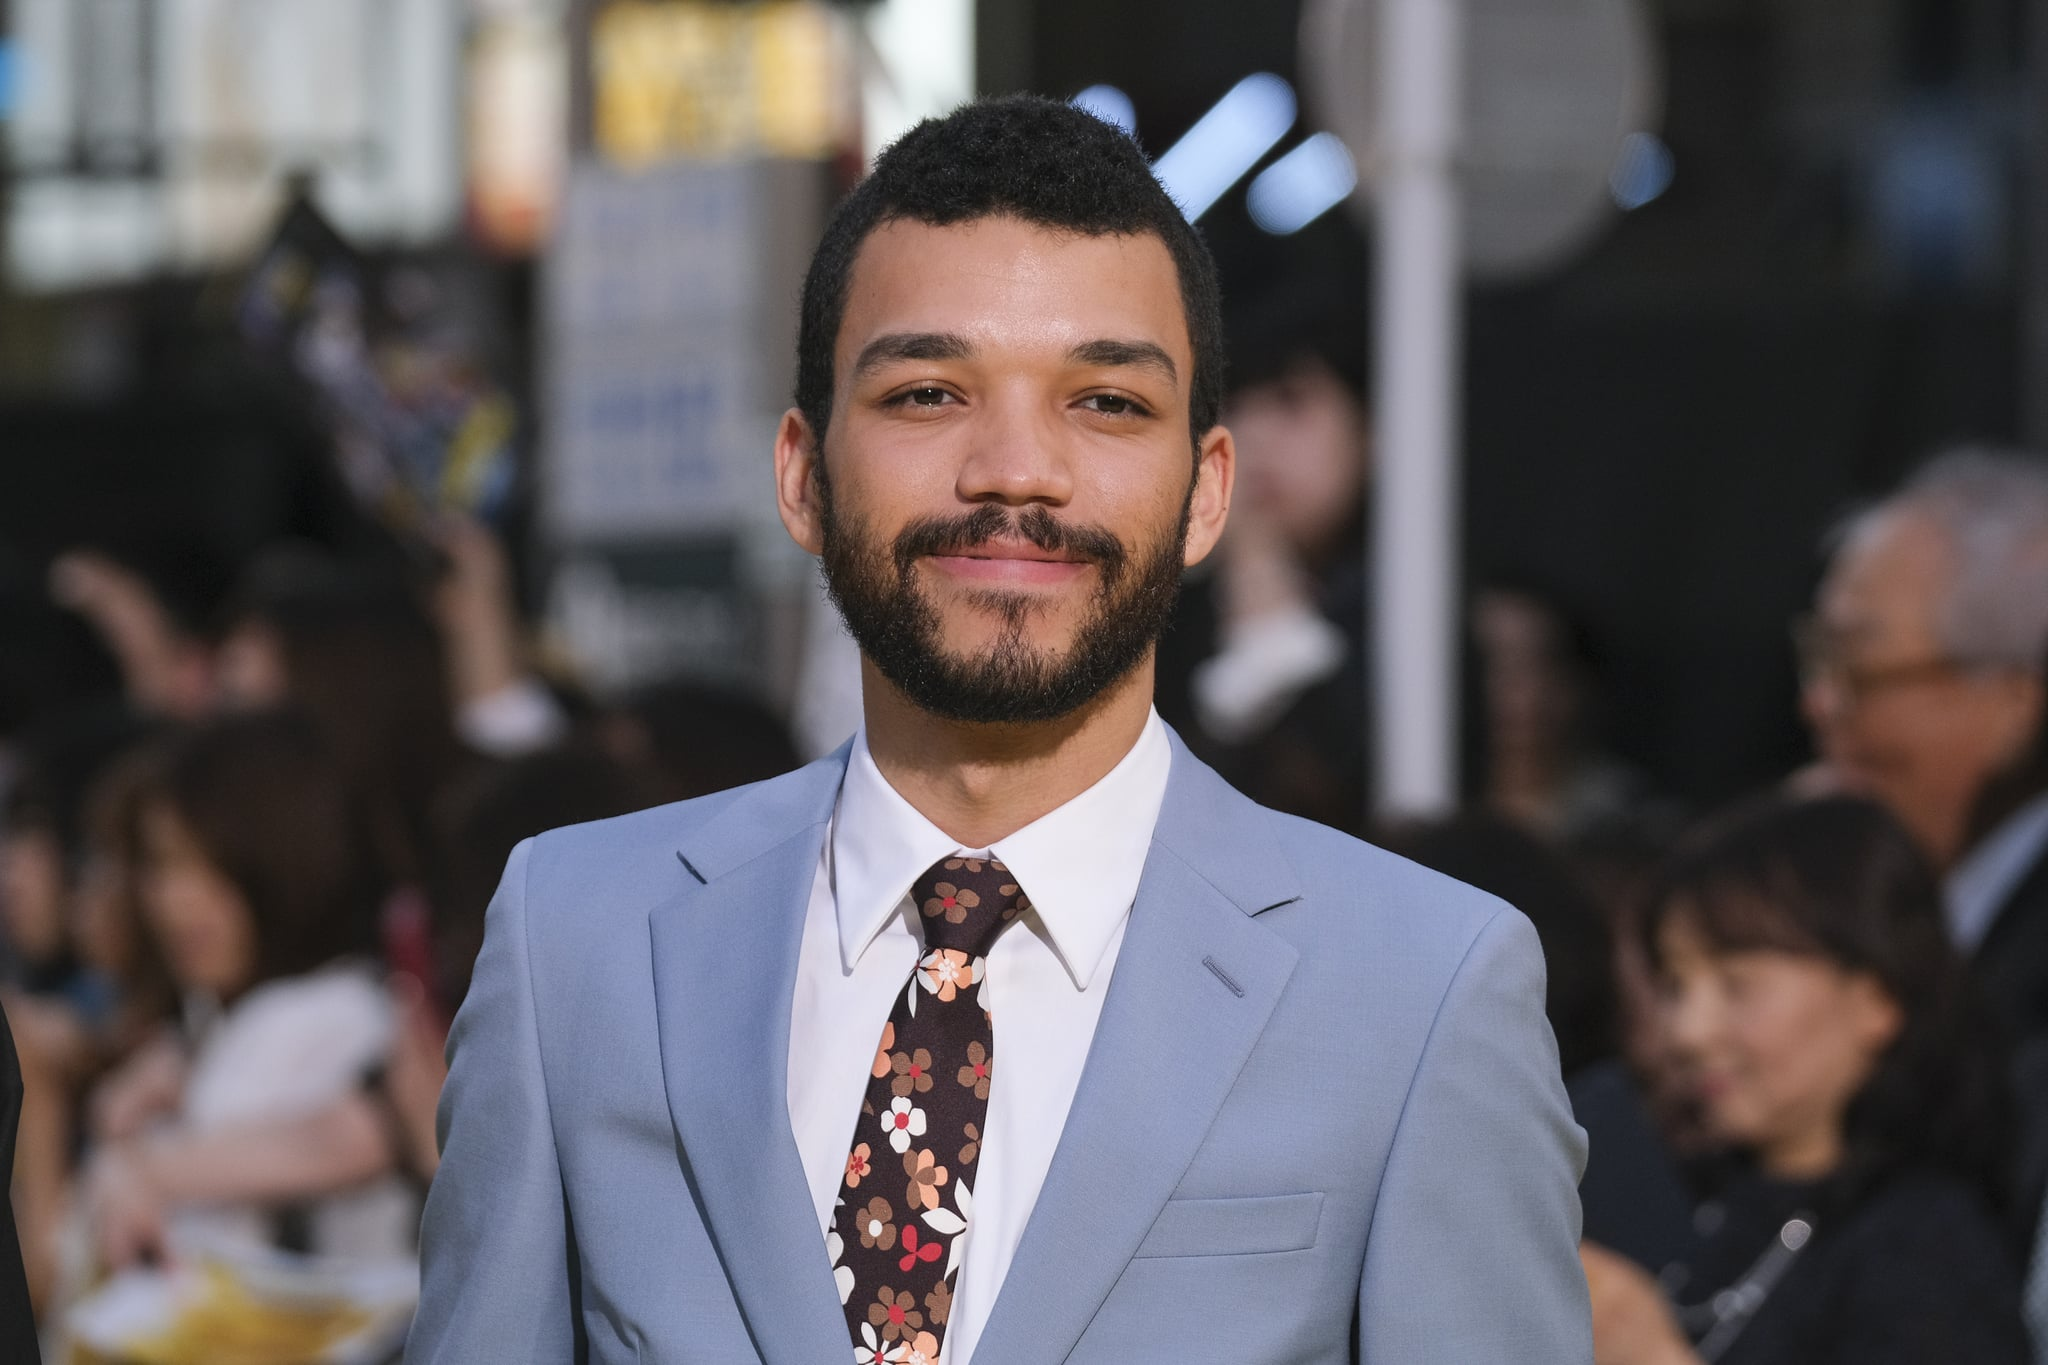 TOKYO, JAPAN - APRIL 25:  Actor Justice Smith attends the world premiere of 'Pokemon Detective Pikachu' on April 25, 2019 in Tokyo, Japan. (Photo by Keith Tsuji/Getty Images)